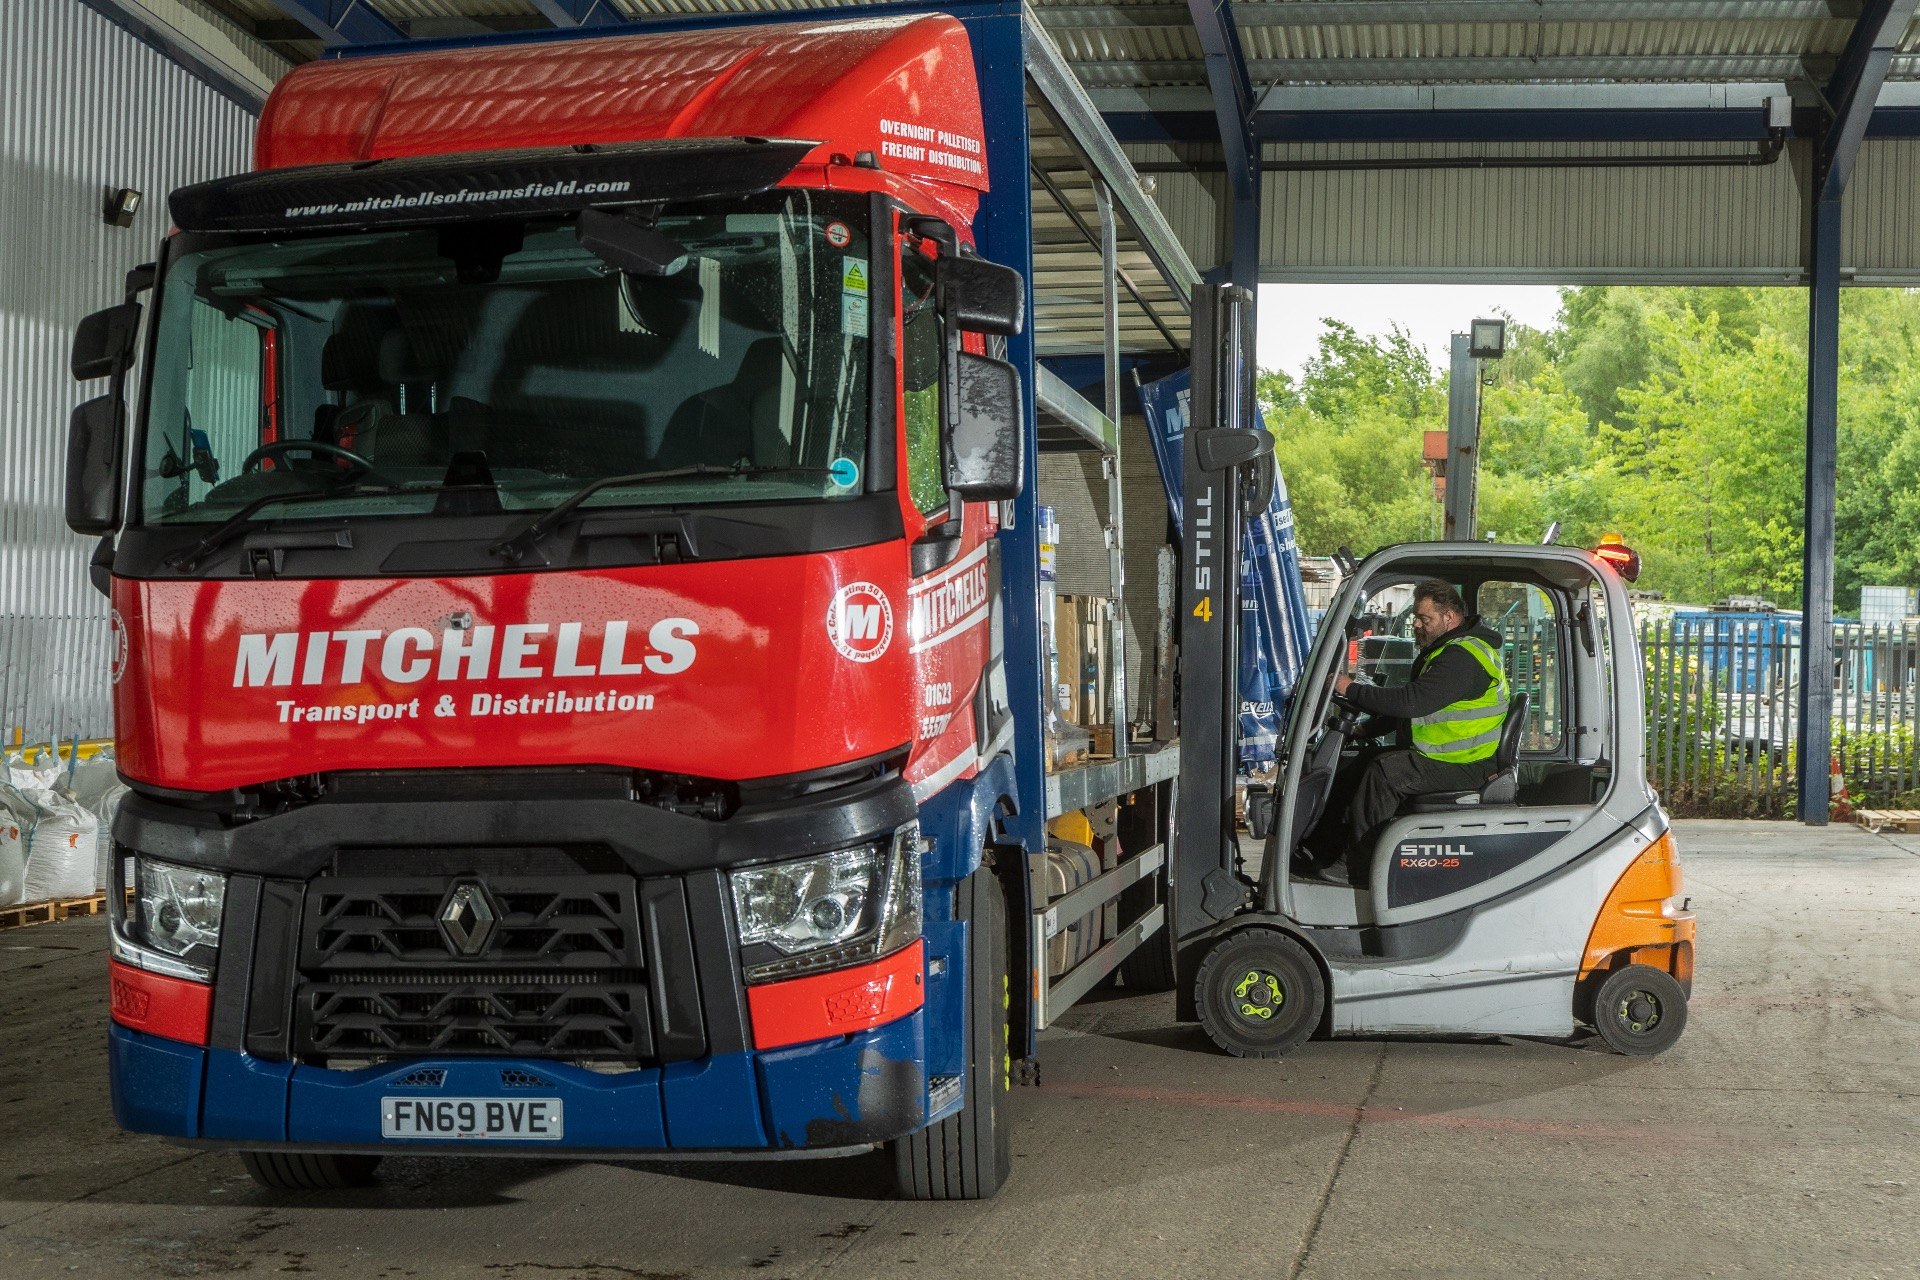 Mitchells lorry being loaded with pallets for delivery